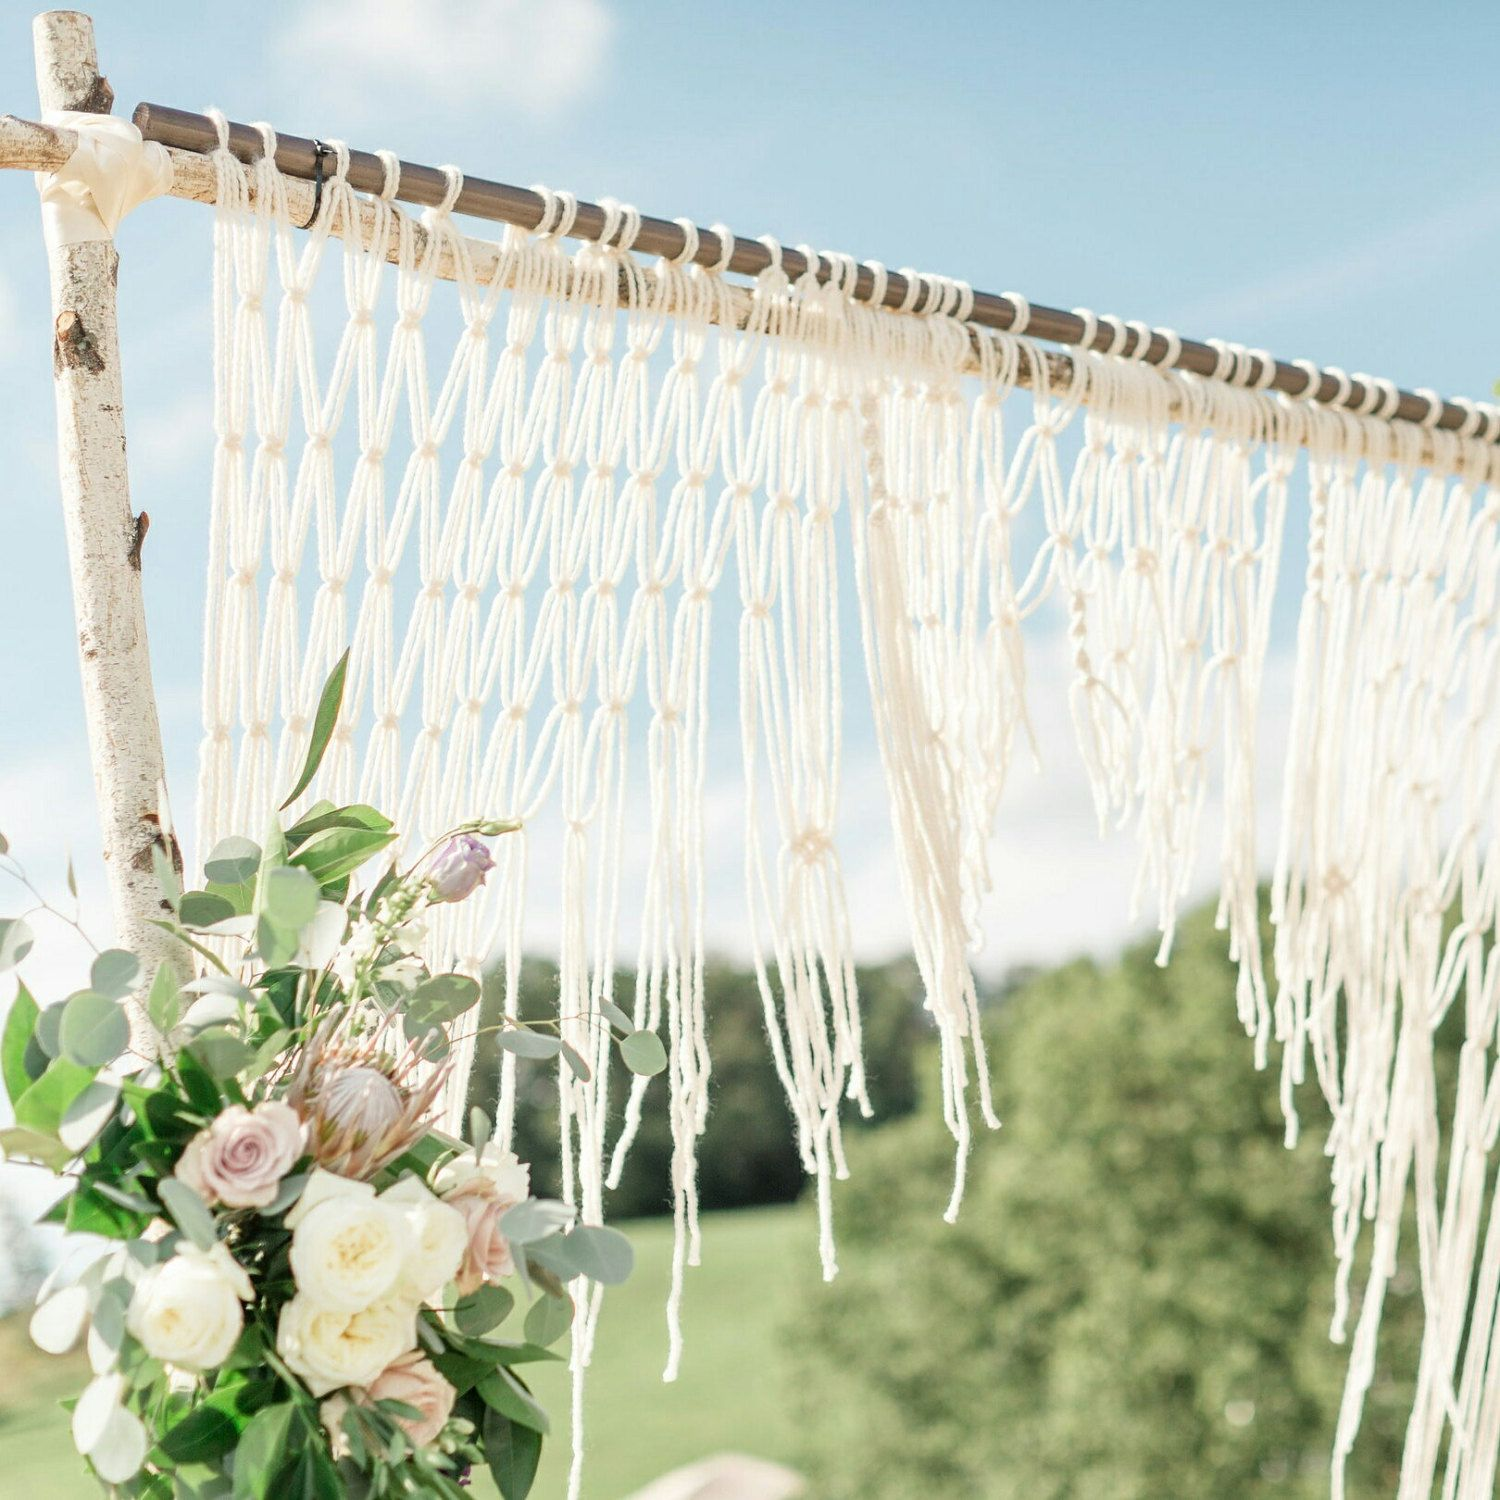 macrame wedding ceremony backdrop for an arch arbor altar or